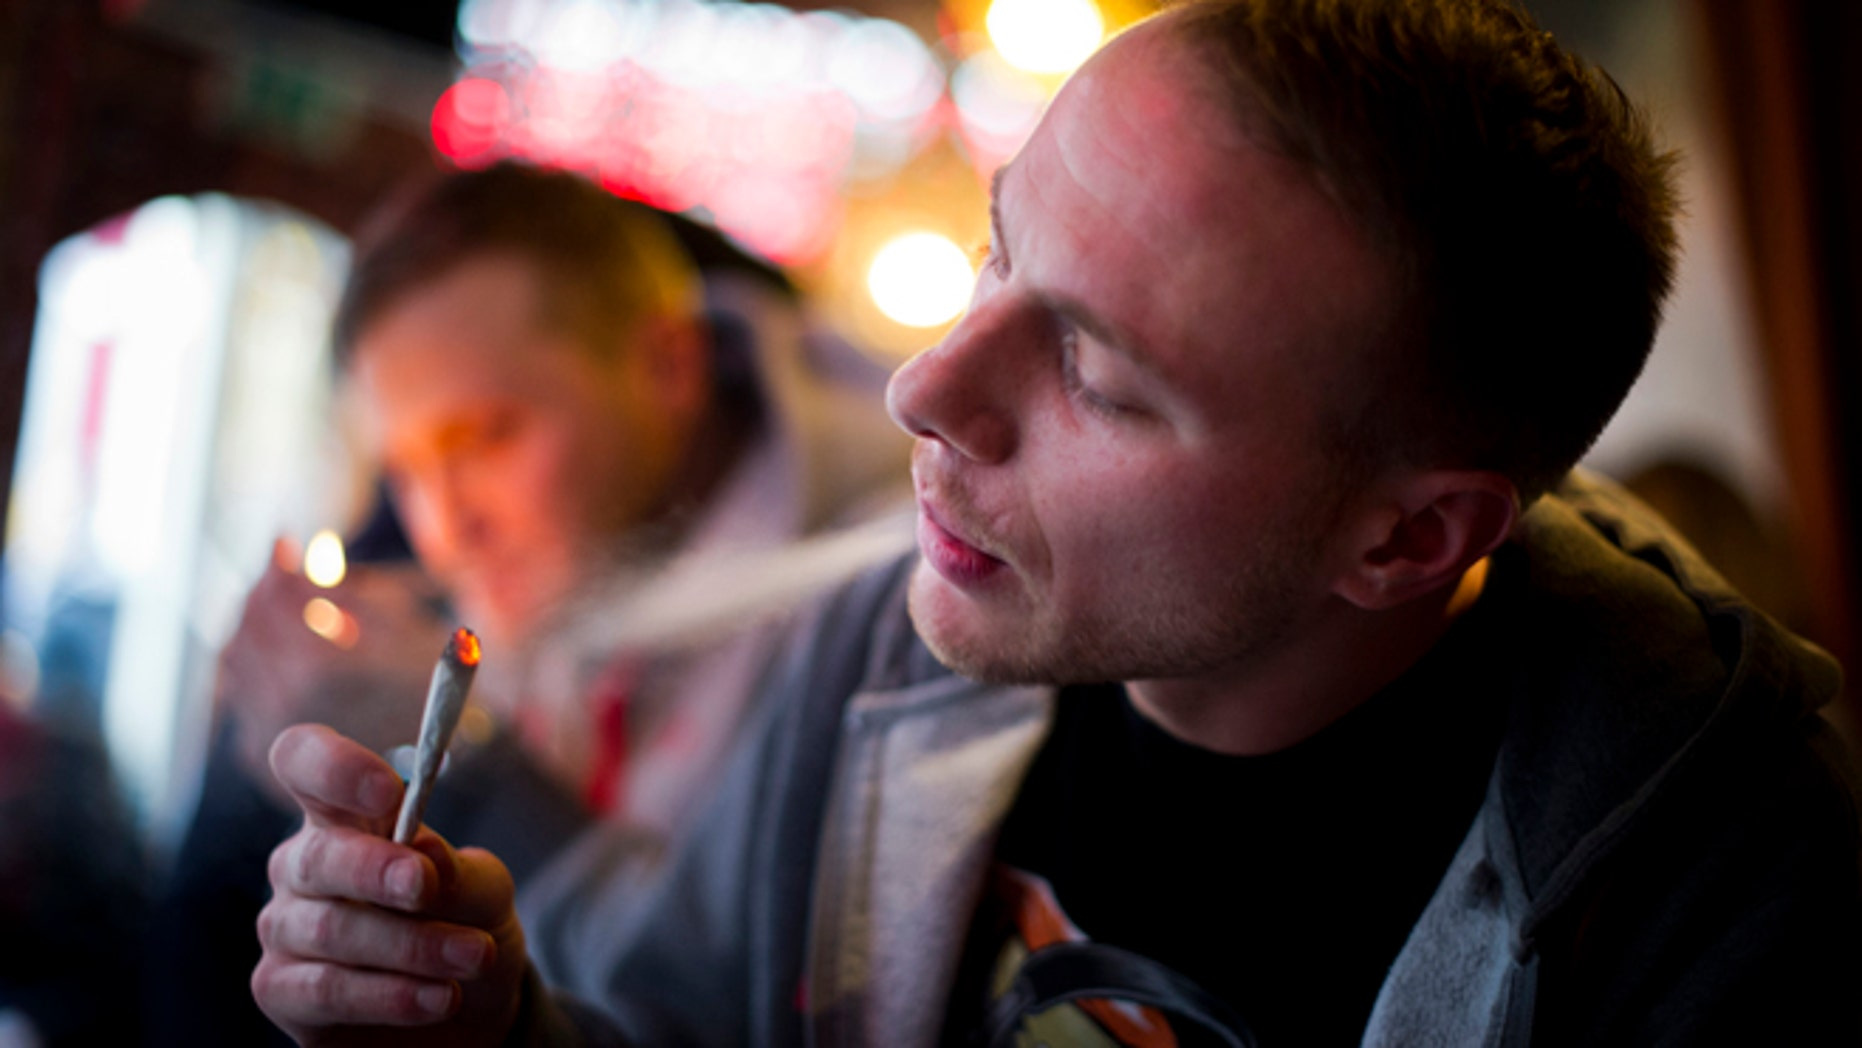 AMSTERDAM, NETHERLANDS - NOVEMBER 01:  Jay, 29 years old from London, smokes cannabis in a coffee shop on November 1, 2012 in the center of Amsterdam, Netherlands. Coffee shops in the Dutch captial will remain open to tourists after its mayor, Eberhard van der Laan, decided that tourists will not be banned from the 220 coffee shops in Amsterdam where marijuana and hashish are openly sold and consumed. The decision came after the new government of the Netherlands stated that it would be up to local authorities to decide whether or not to impose a ban on cannabis.  (Photo by Jasper Juinen/Getty Images)